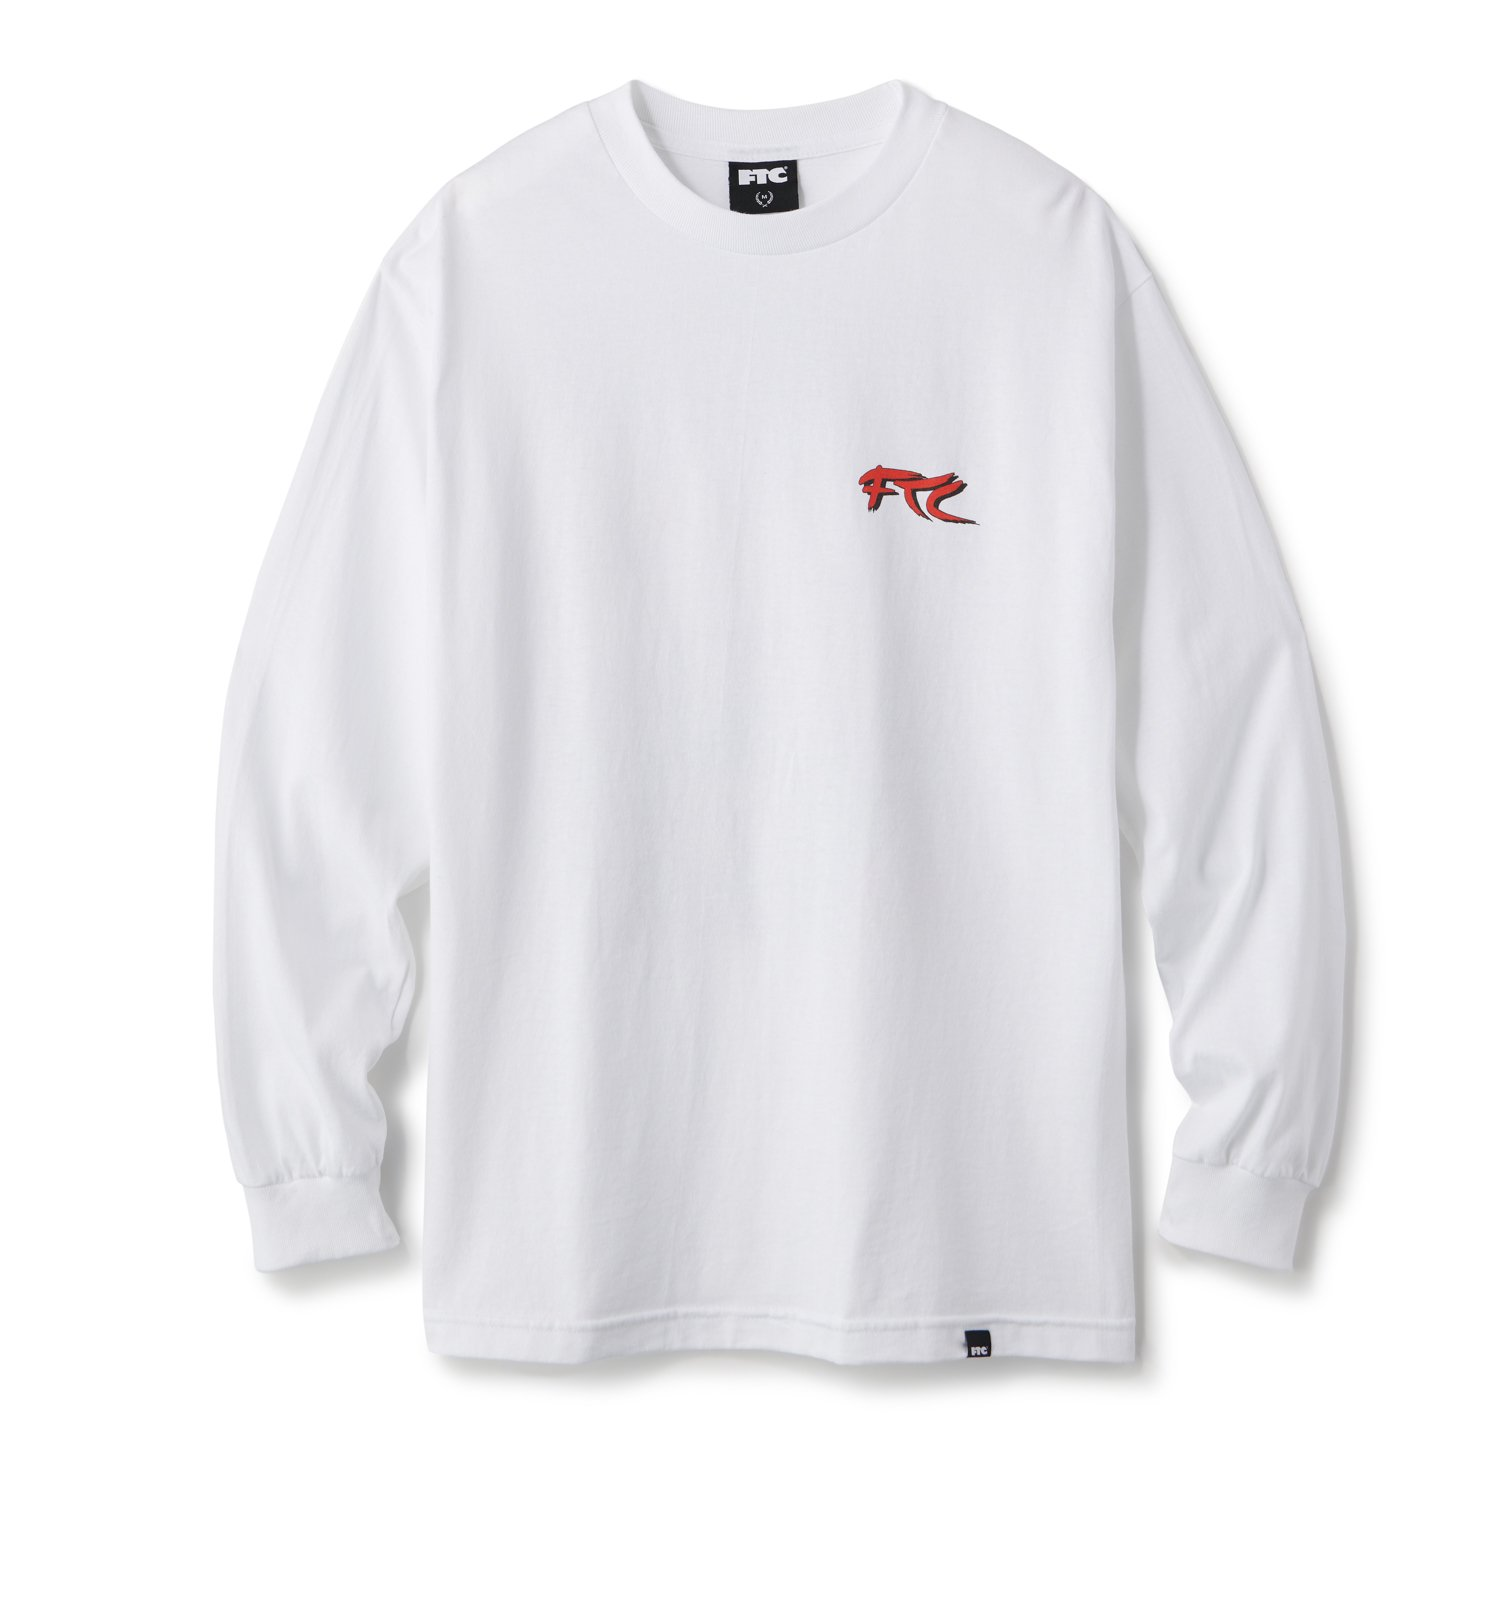 KANG FU ACTION THEATRE L/S TEE